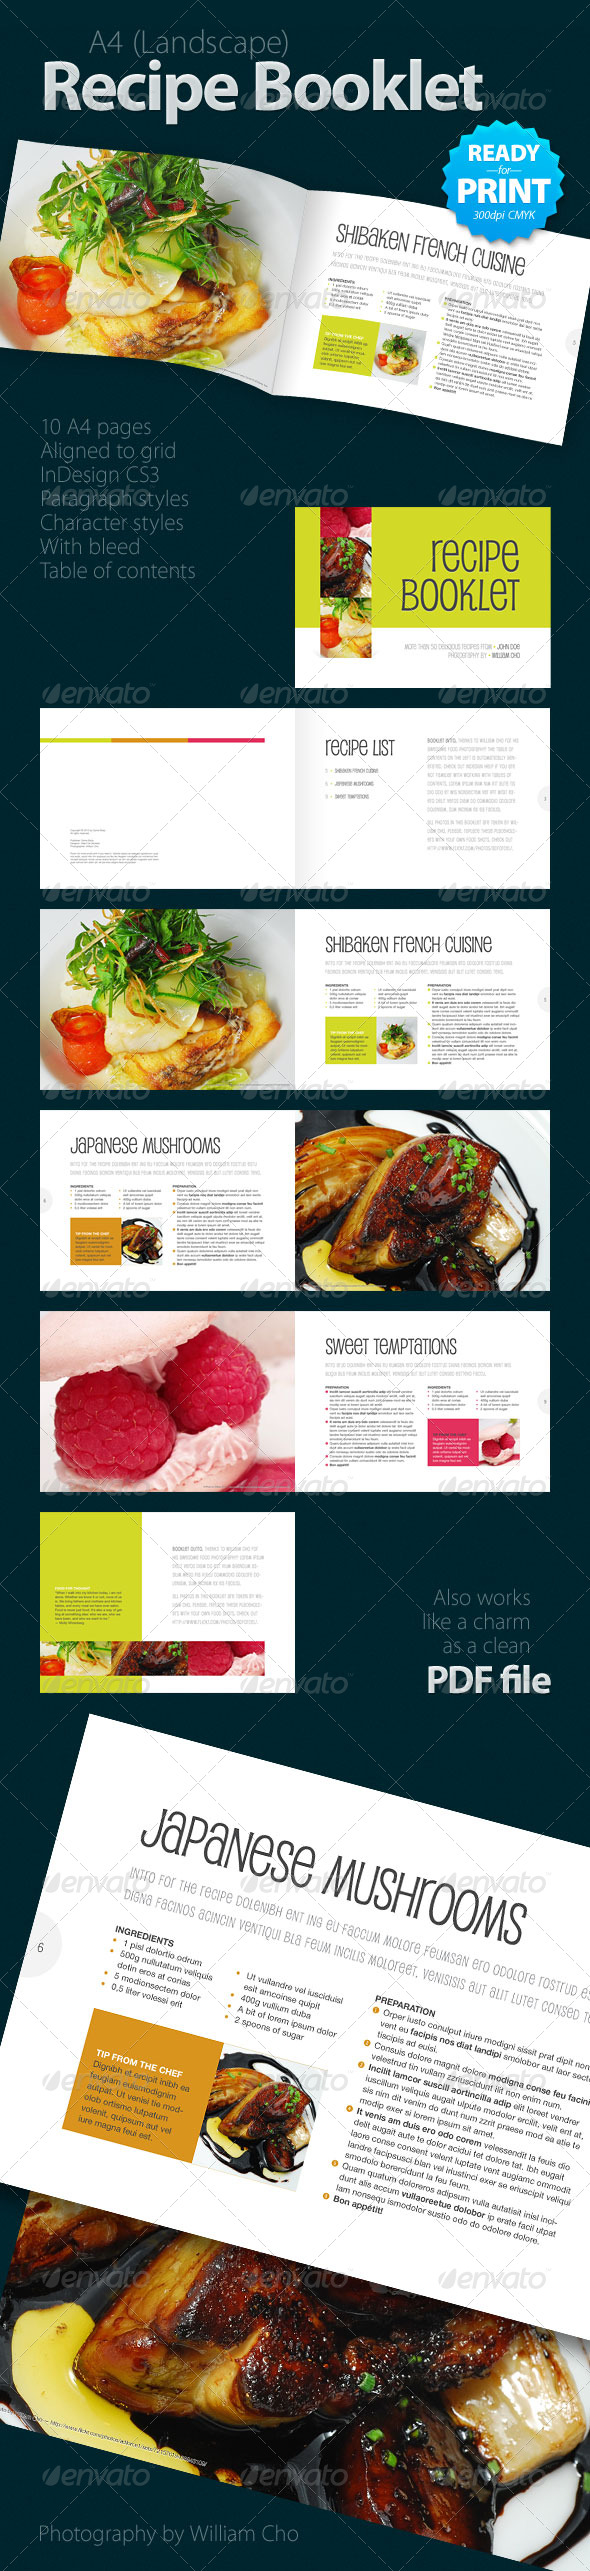 GraphicRiver Recipe Booklet 10 pages 144023